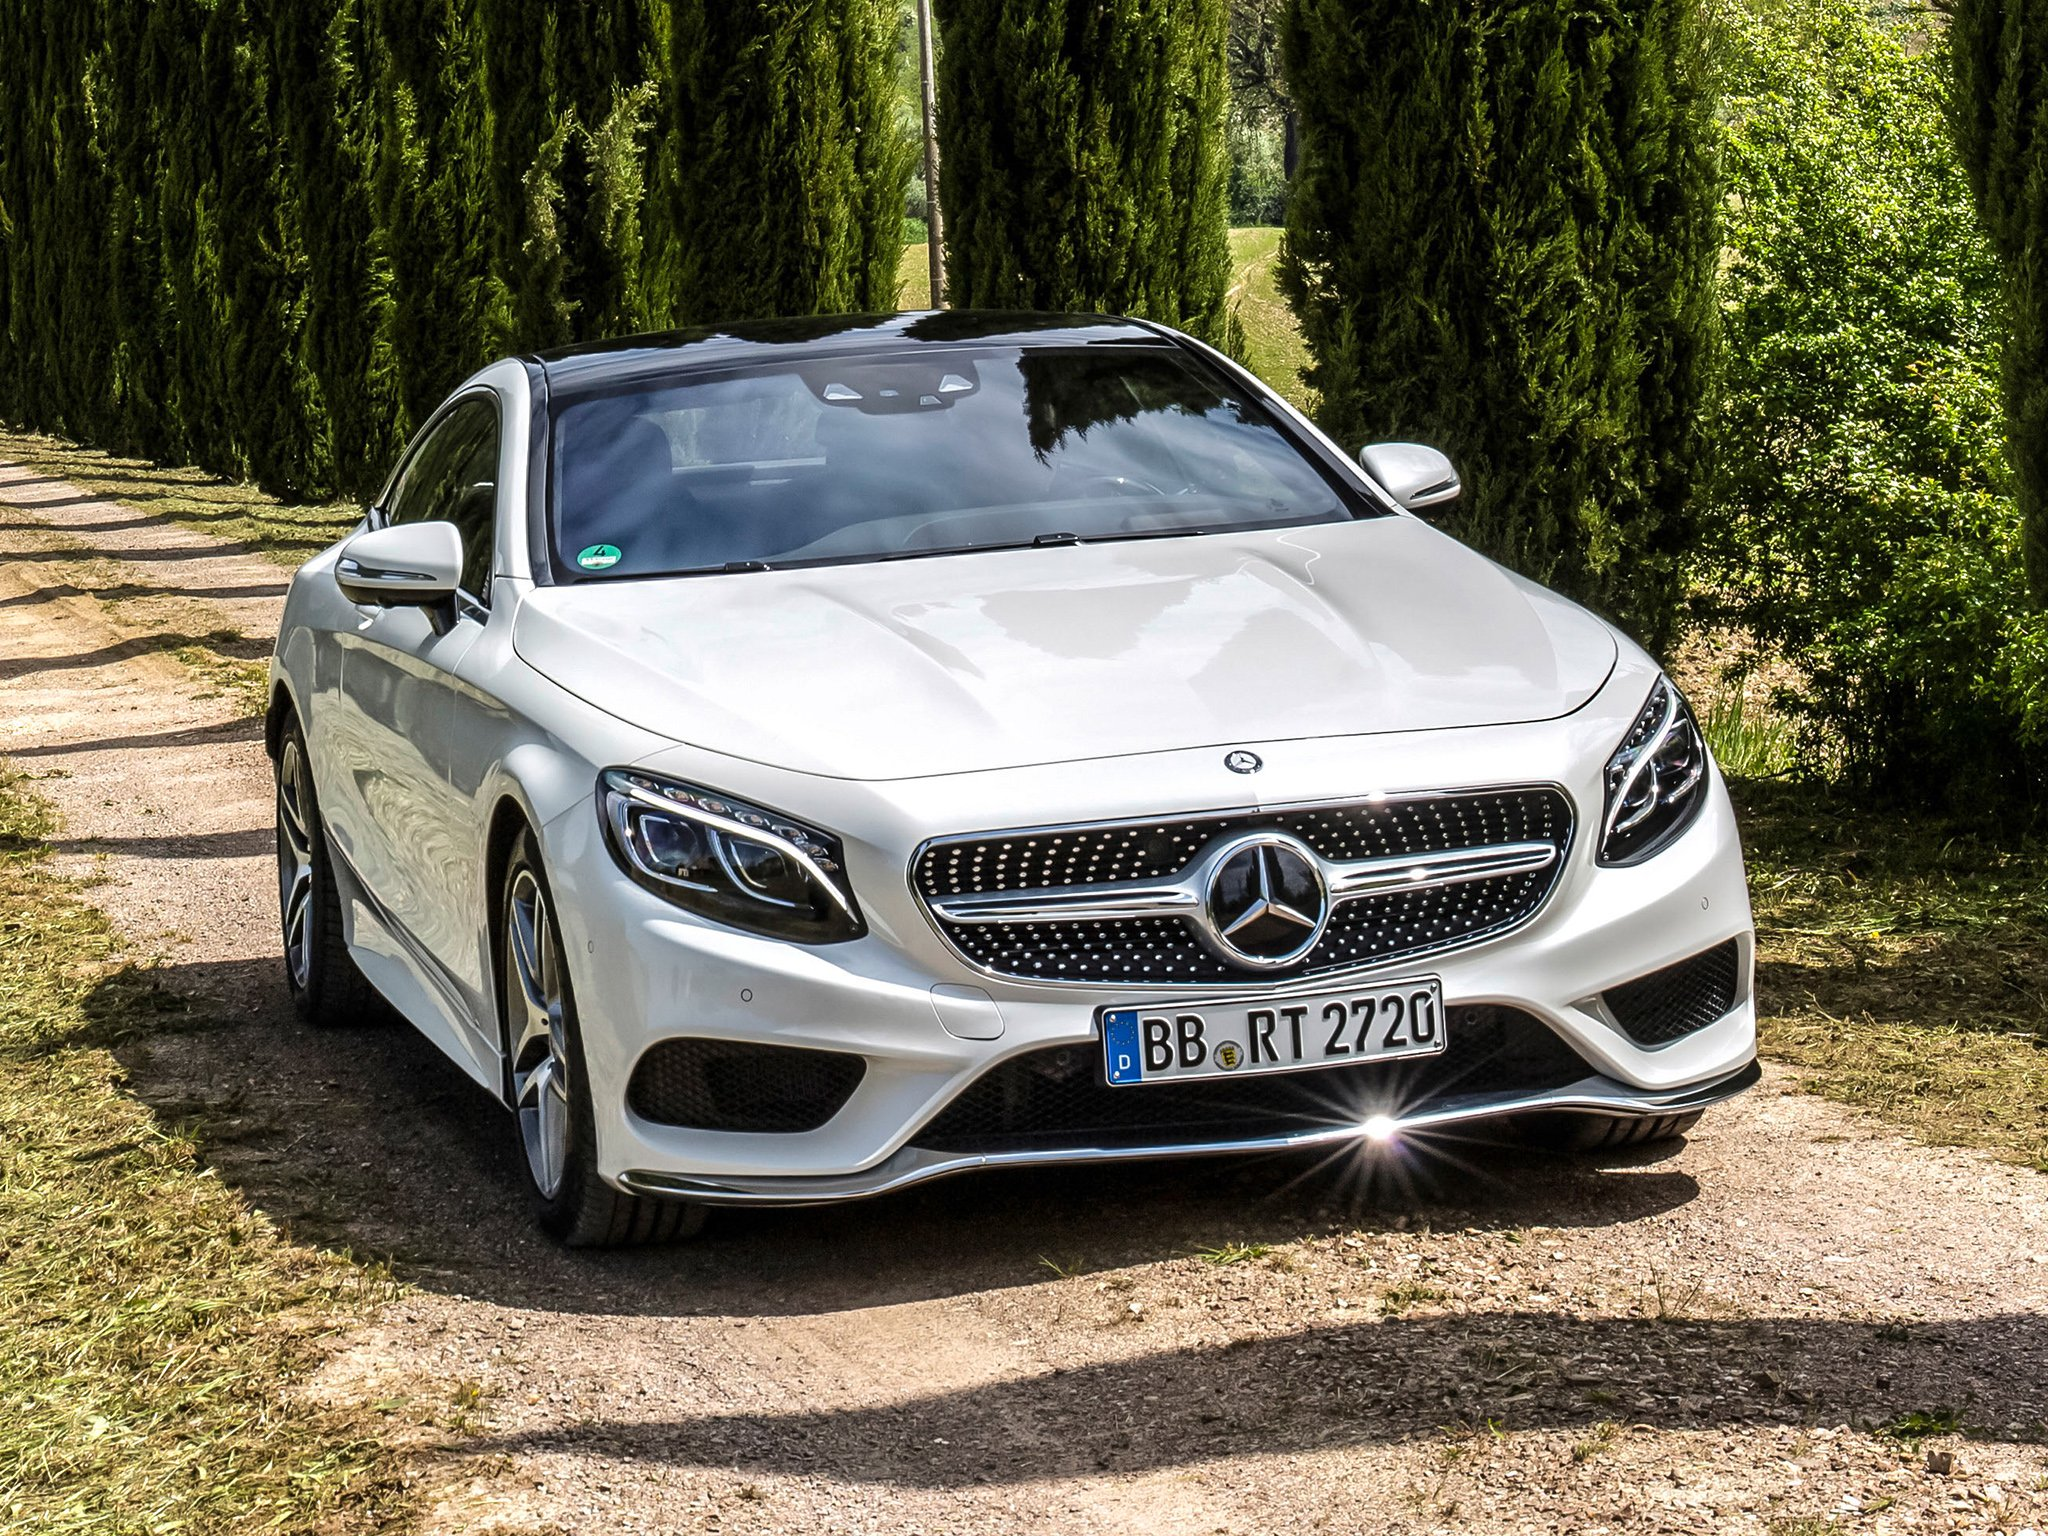 2014 mercedes benz s500 coupe 4matic amg sports package c217 500 r wallpaper 2048x1536 385457 wallpaperup